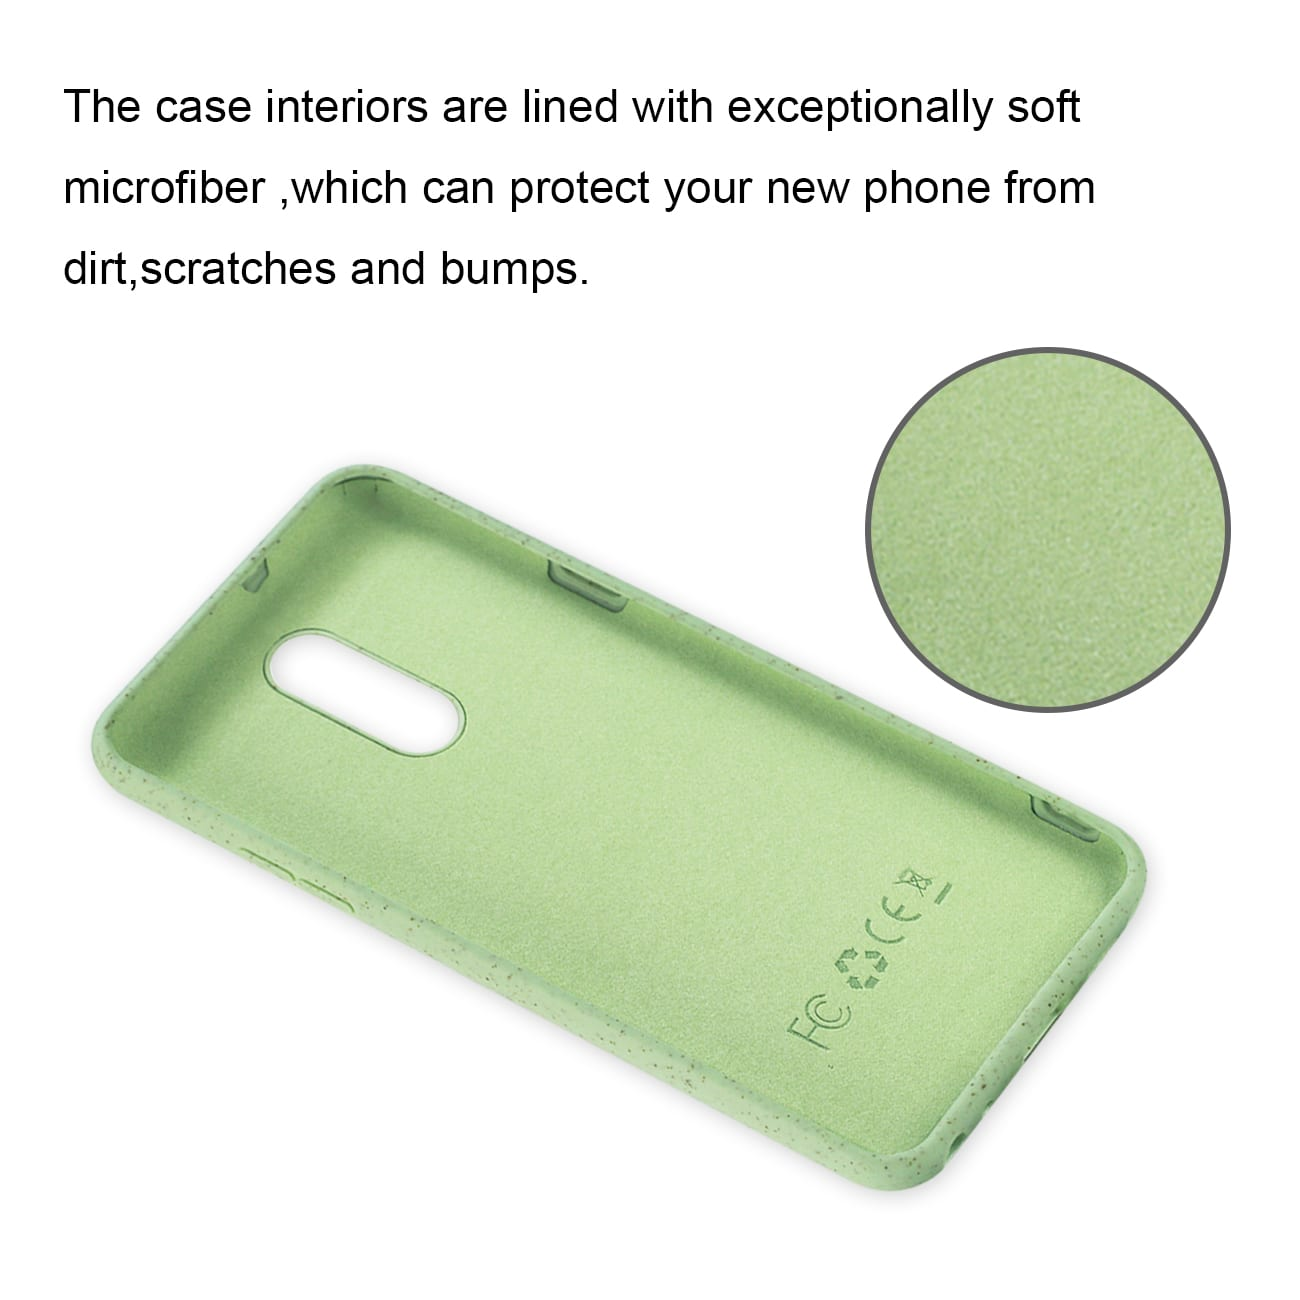 ISTIK LG STYLO 5 Wheat Bran Material Silicone Phone Case In Green